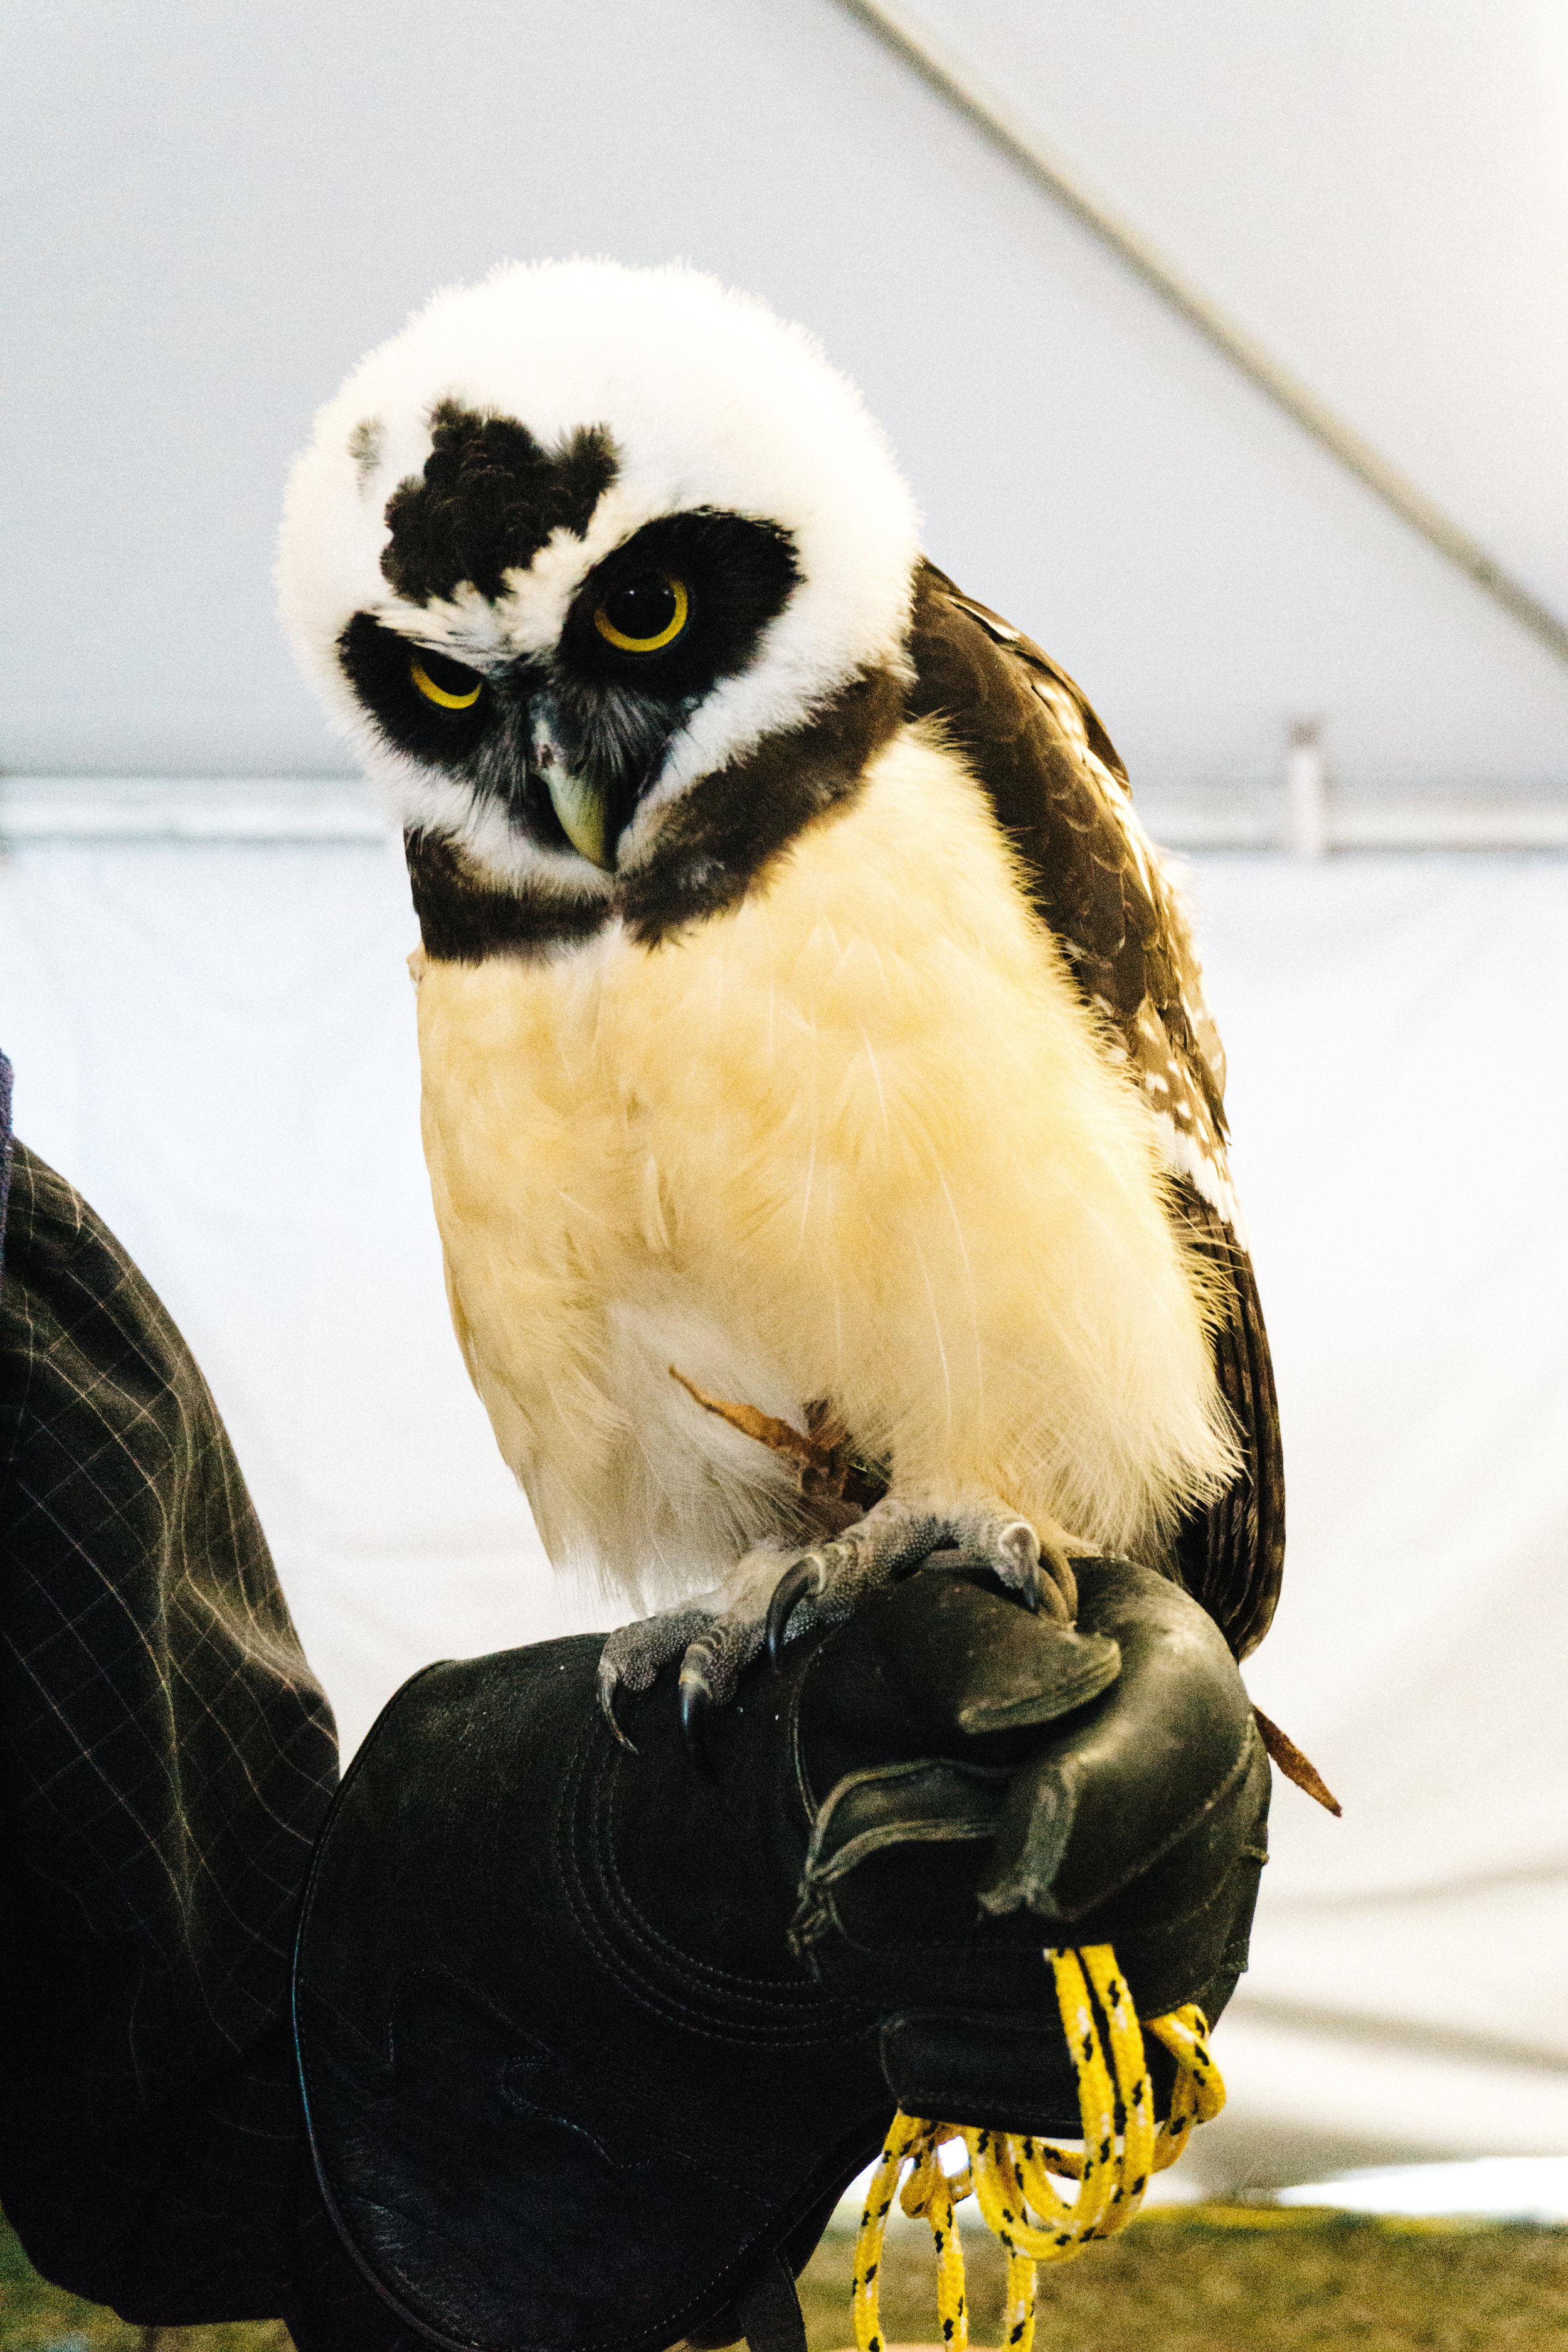 Spectacled Owl from the Center for Birds of Prey in Charleston